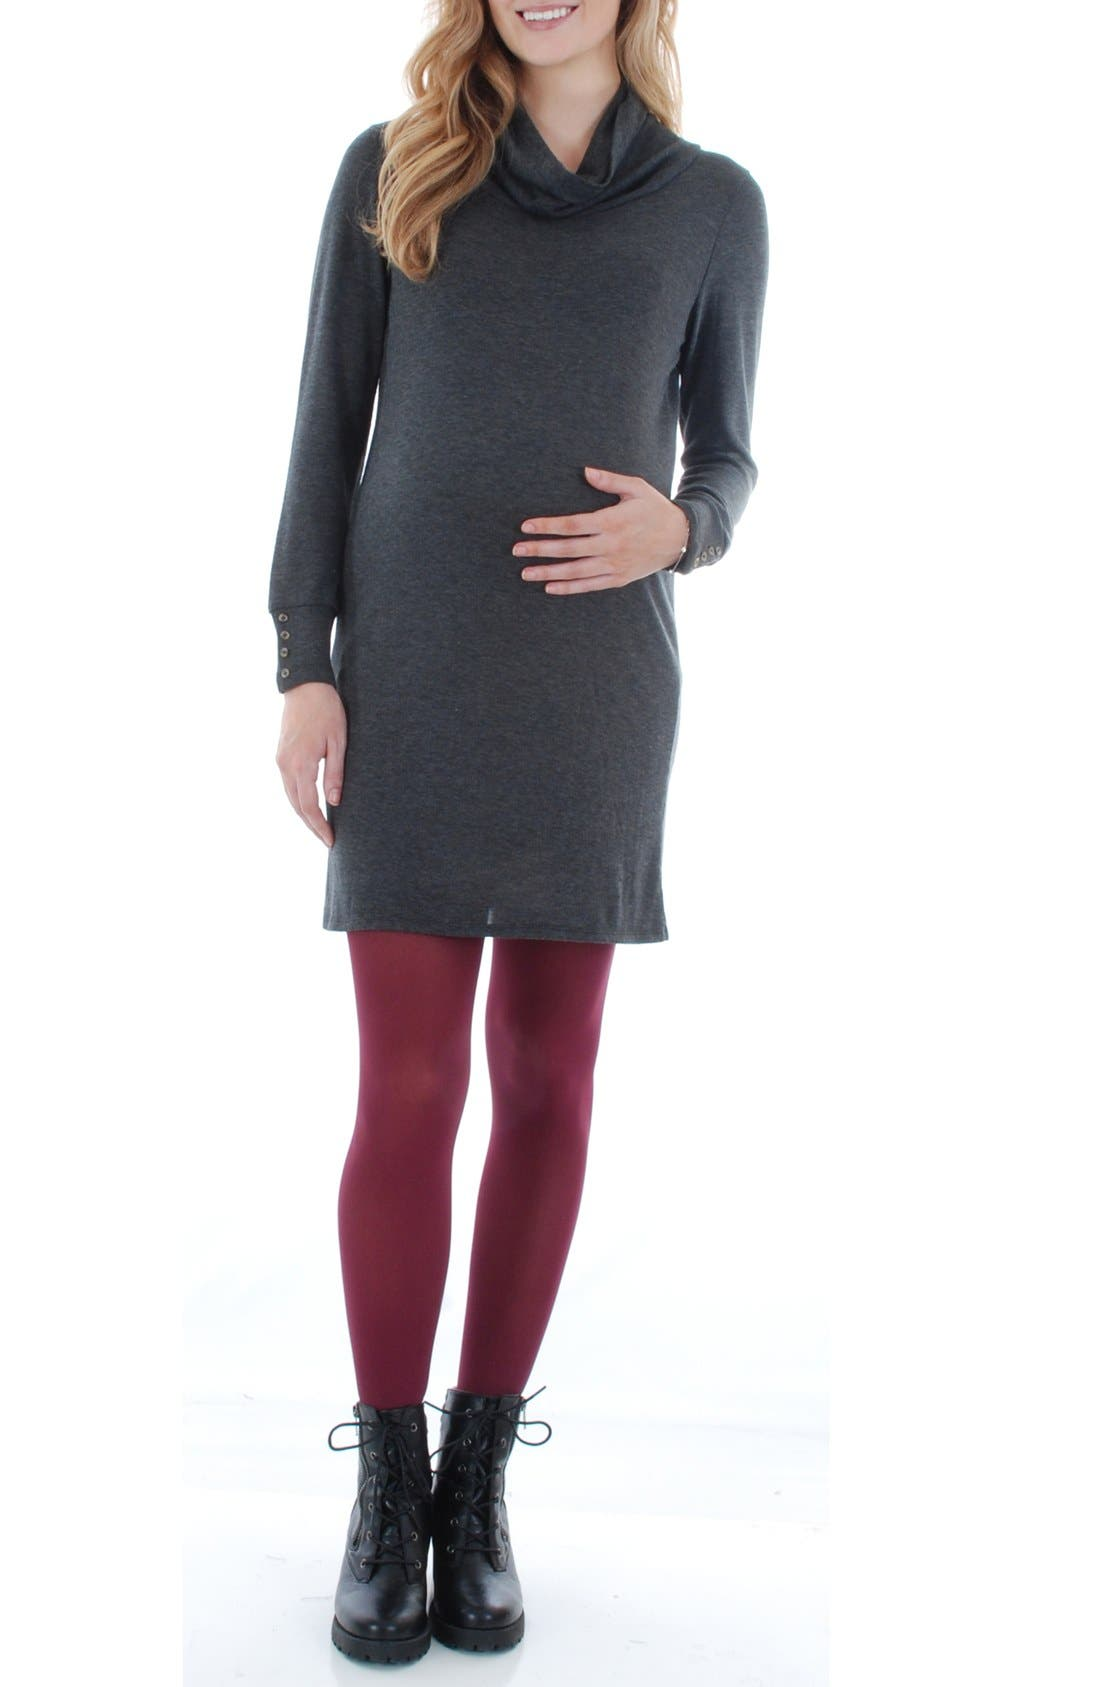 Everly Grey 'Marina' Cowl Neck Maternity Sweater Dress | Nordstrom